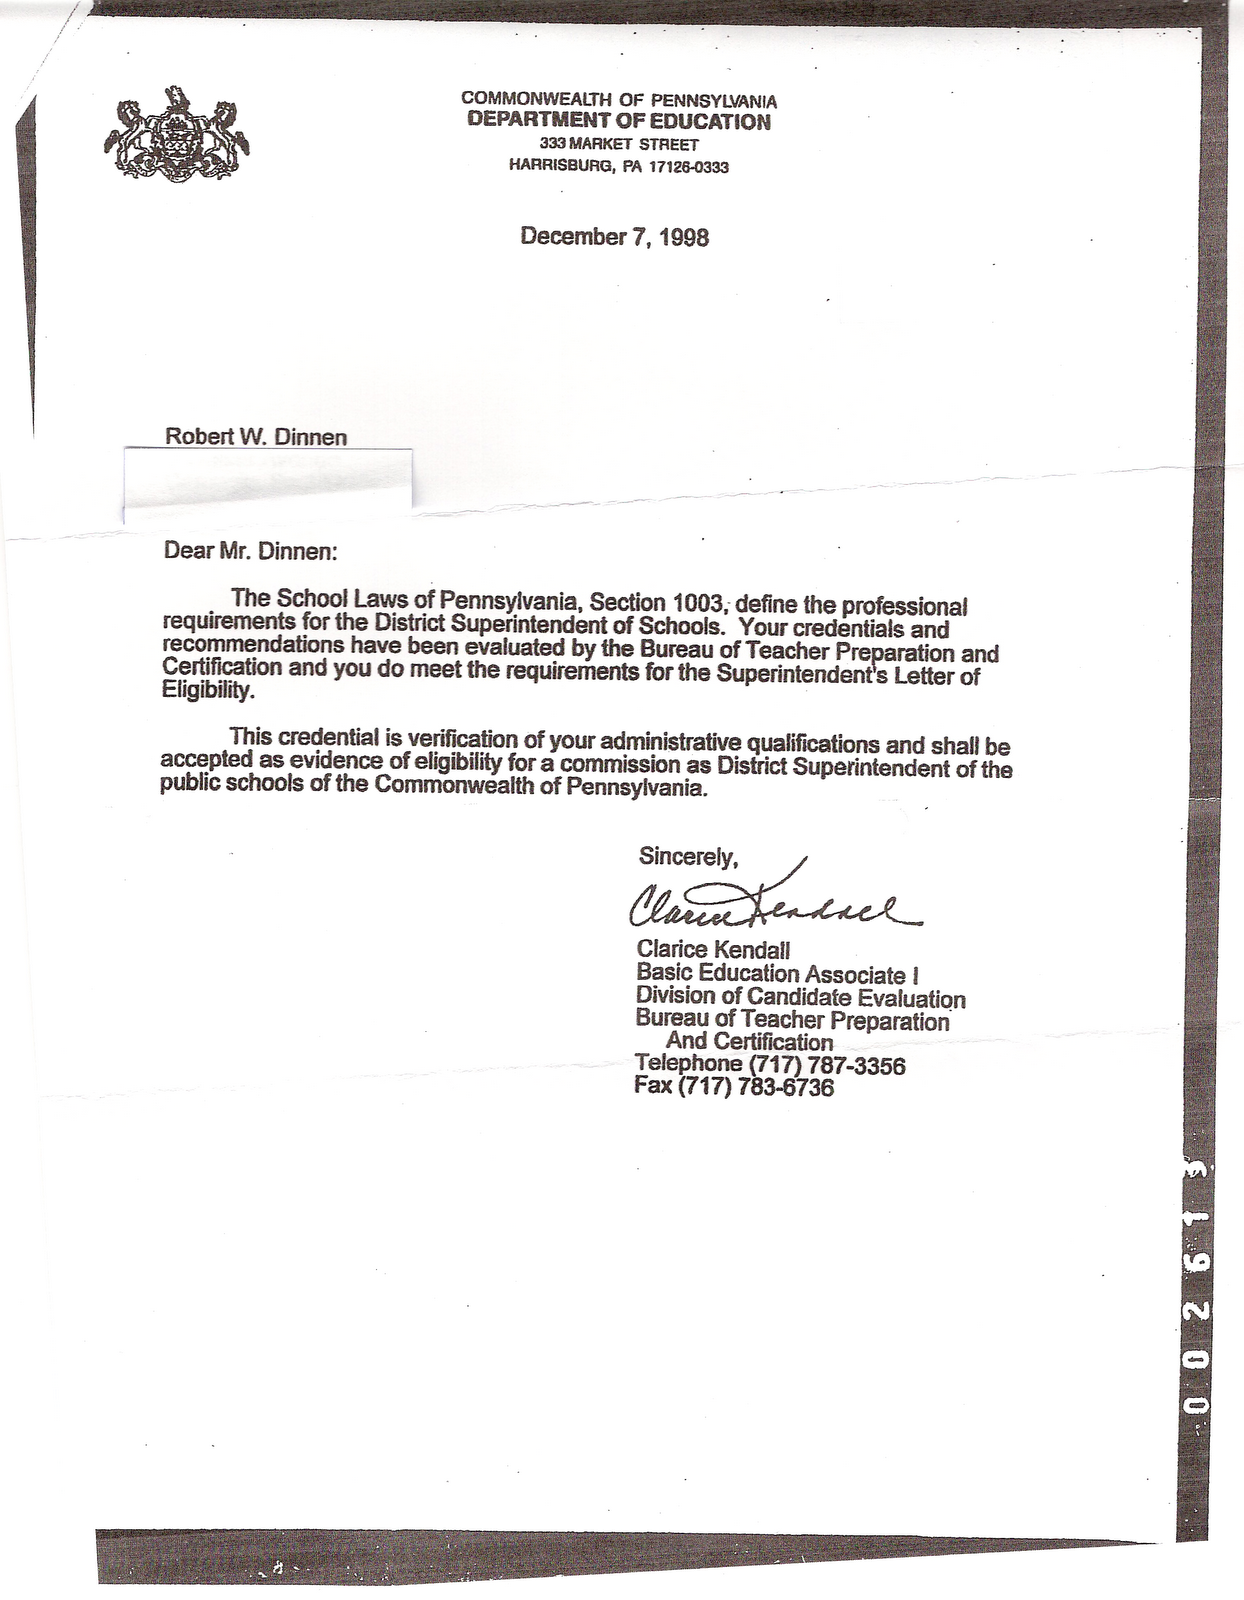 lets compare the 1998 letter of eligibility to the annulled letter from 1996